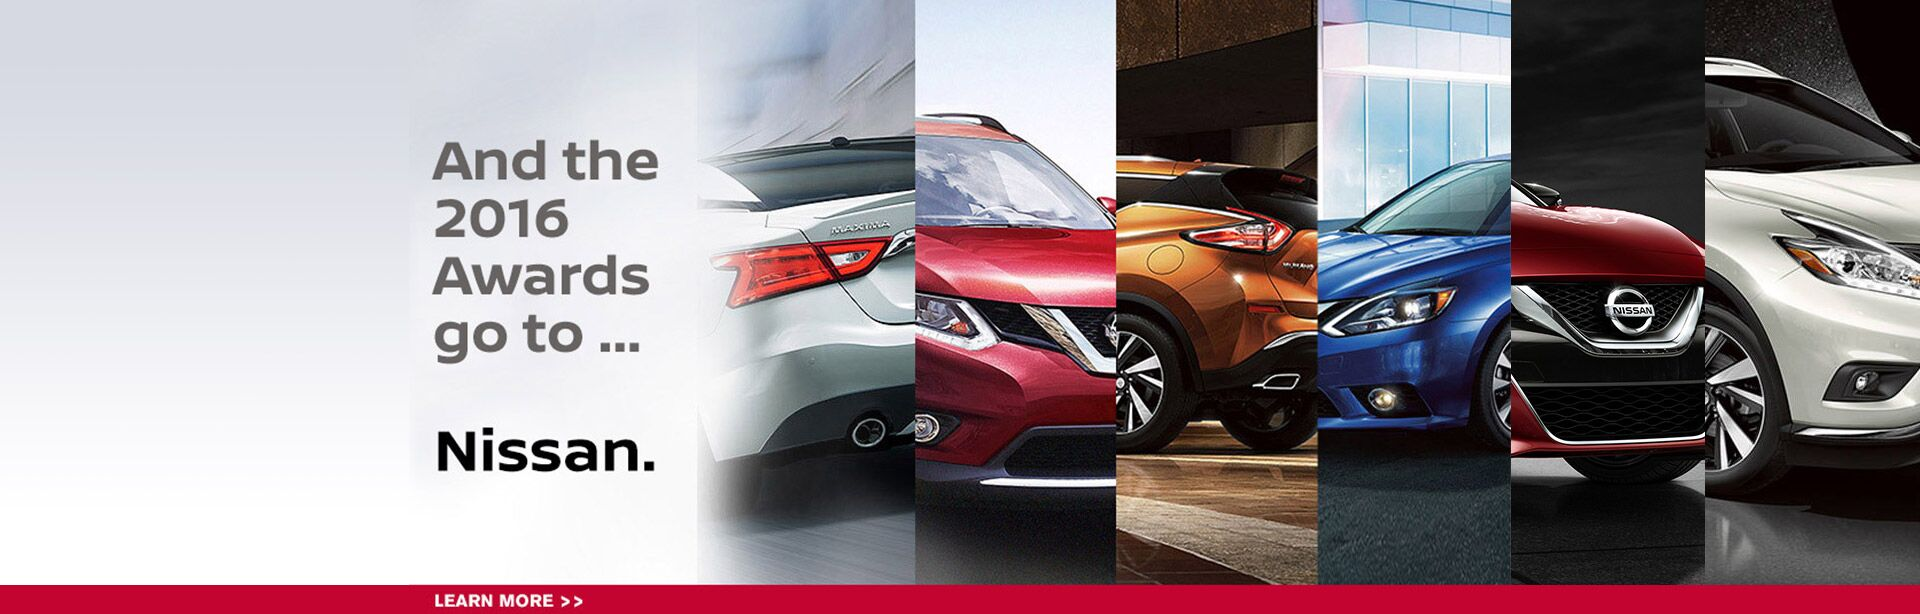 2016 Nissan's